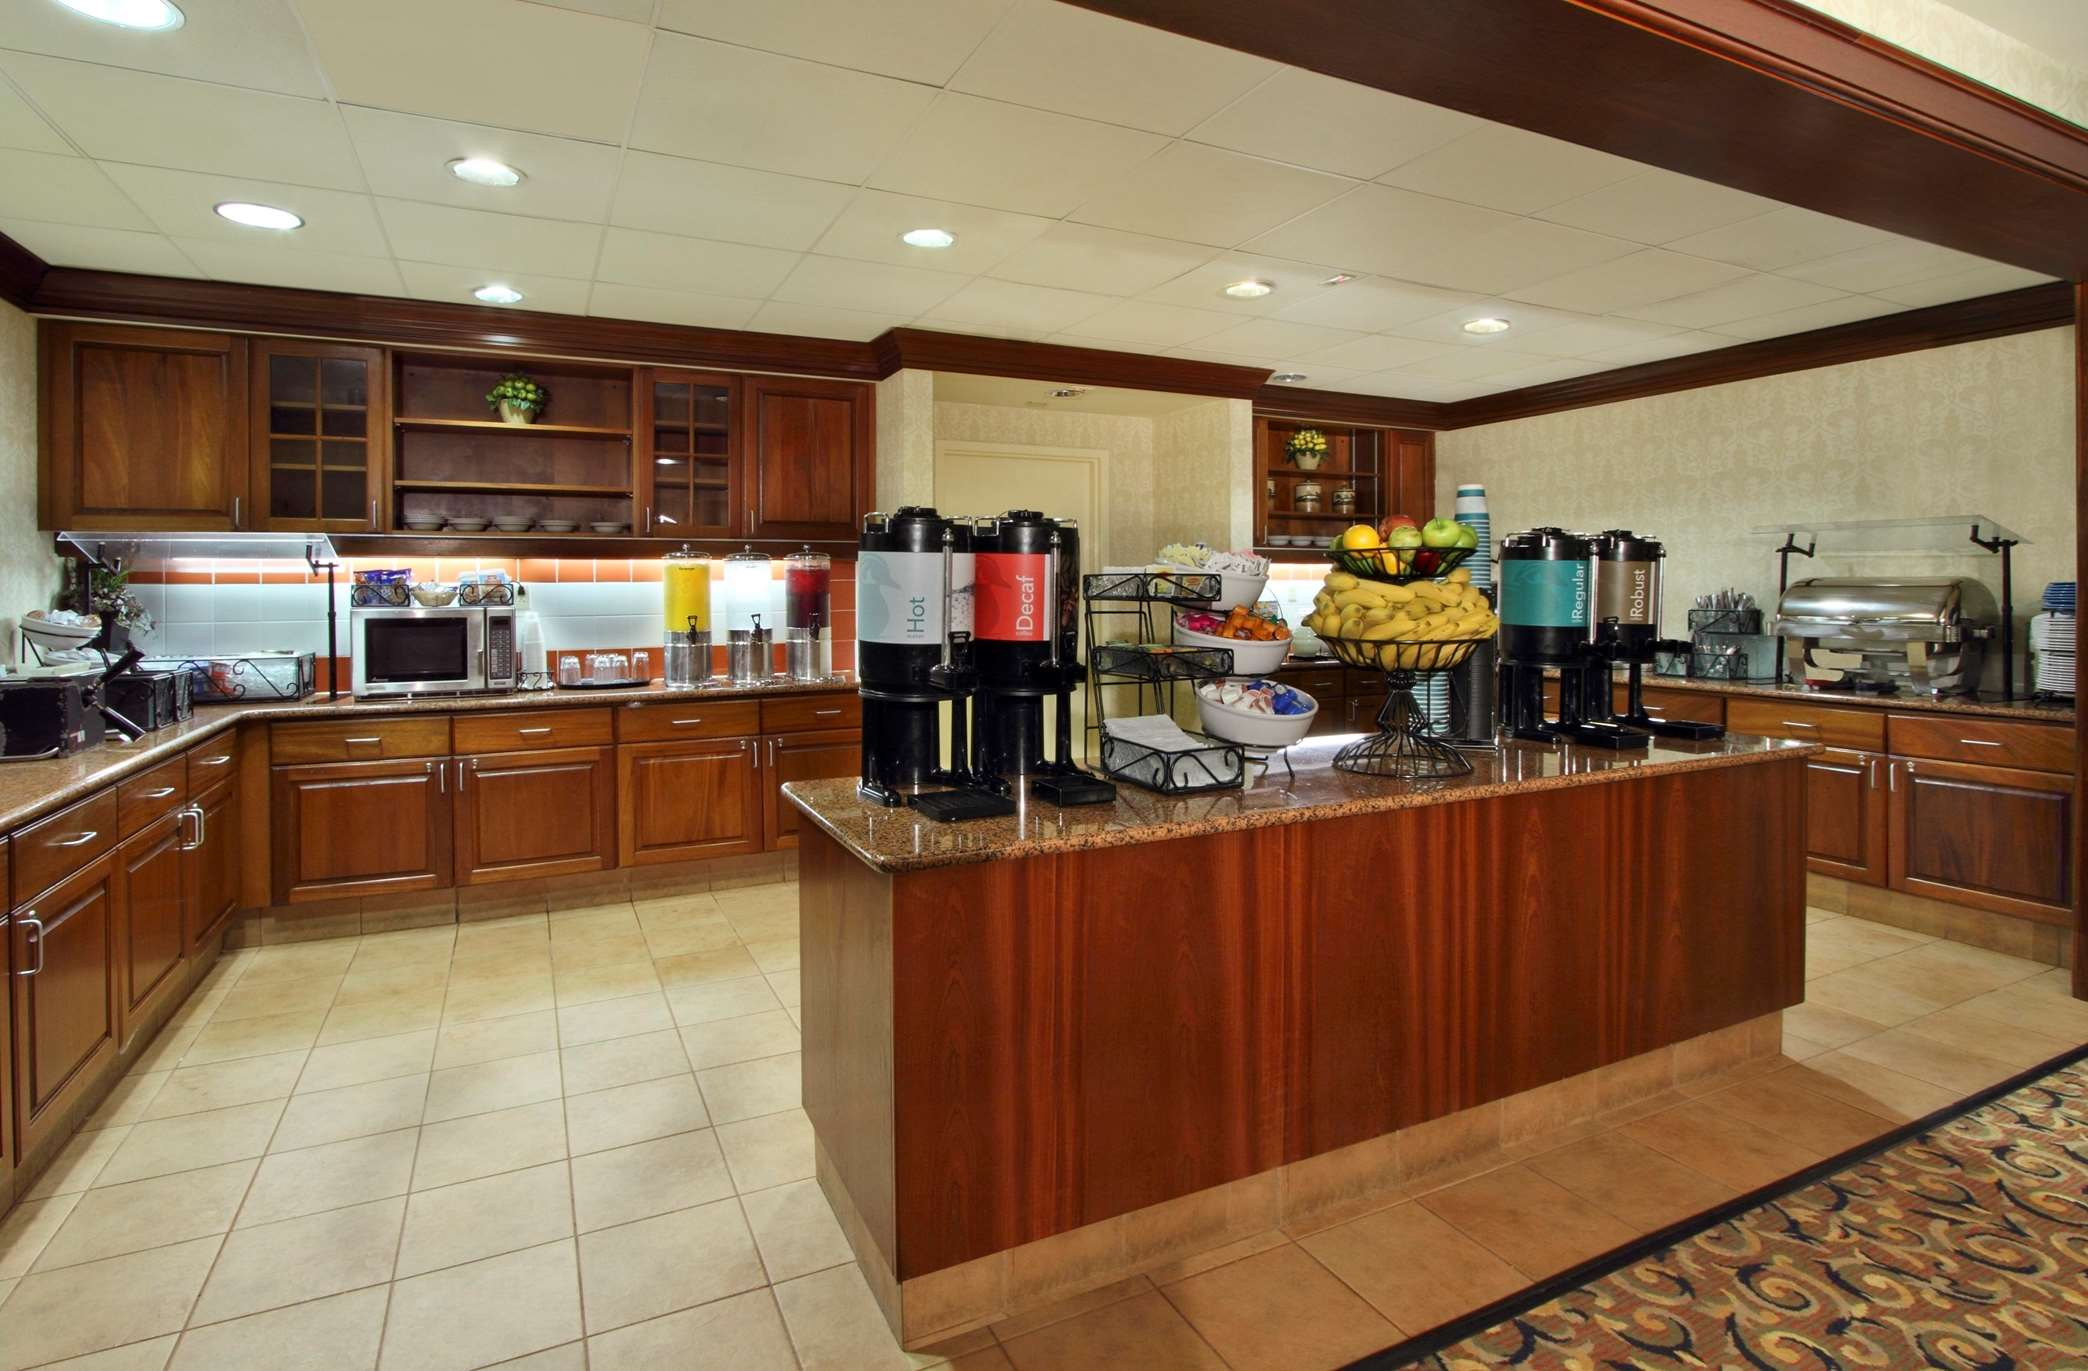 Hilton Hotels Near Chesapeake Va